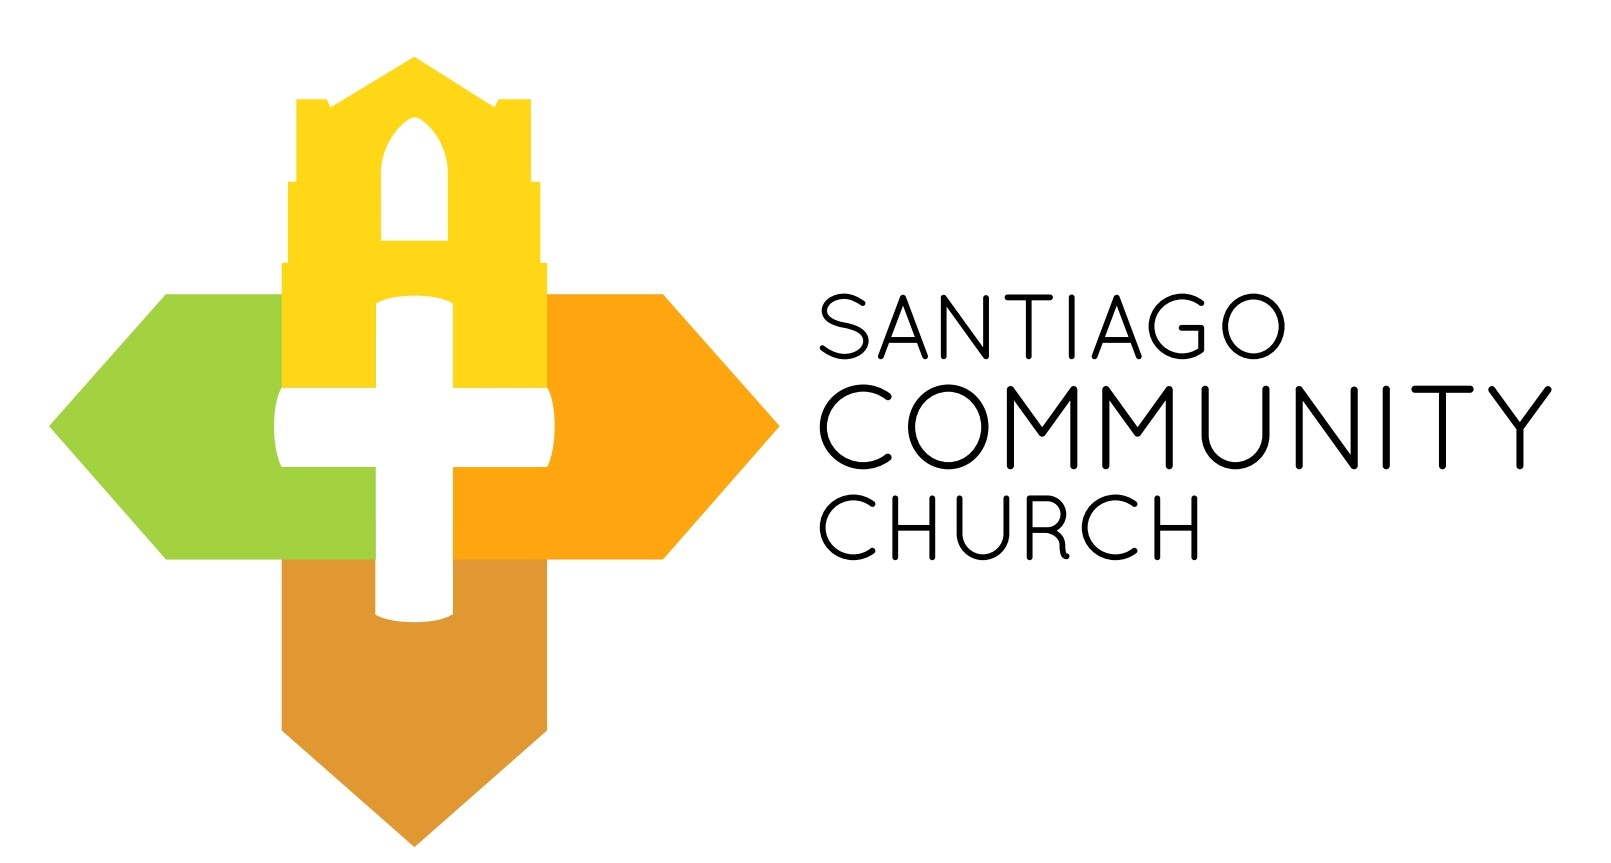 Santiago Community Church